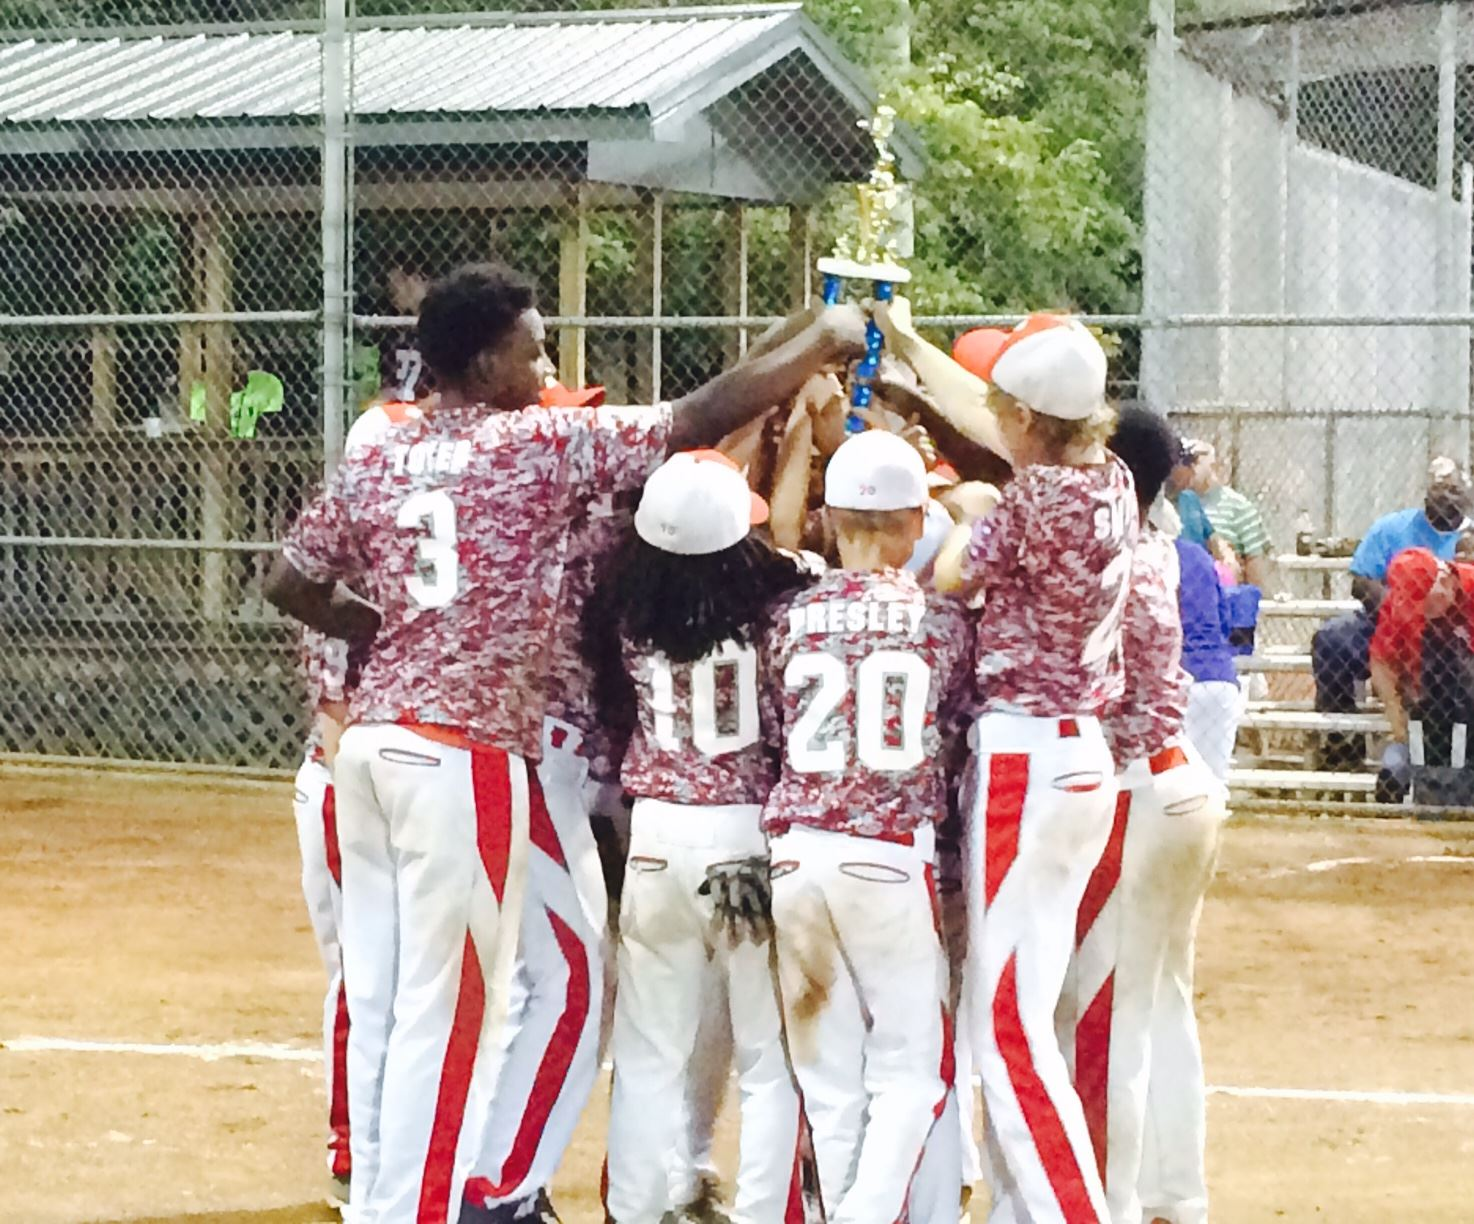 Pitchers Ontarius Toyer (3) and Cody Smith (2) join Munford teammates in raising the trophy after winning the District 2 Dixie Youth O-Zone title Monday night.